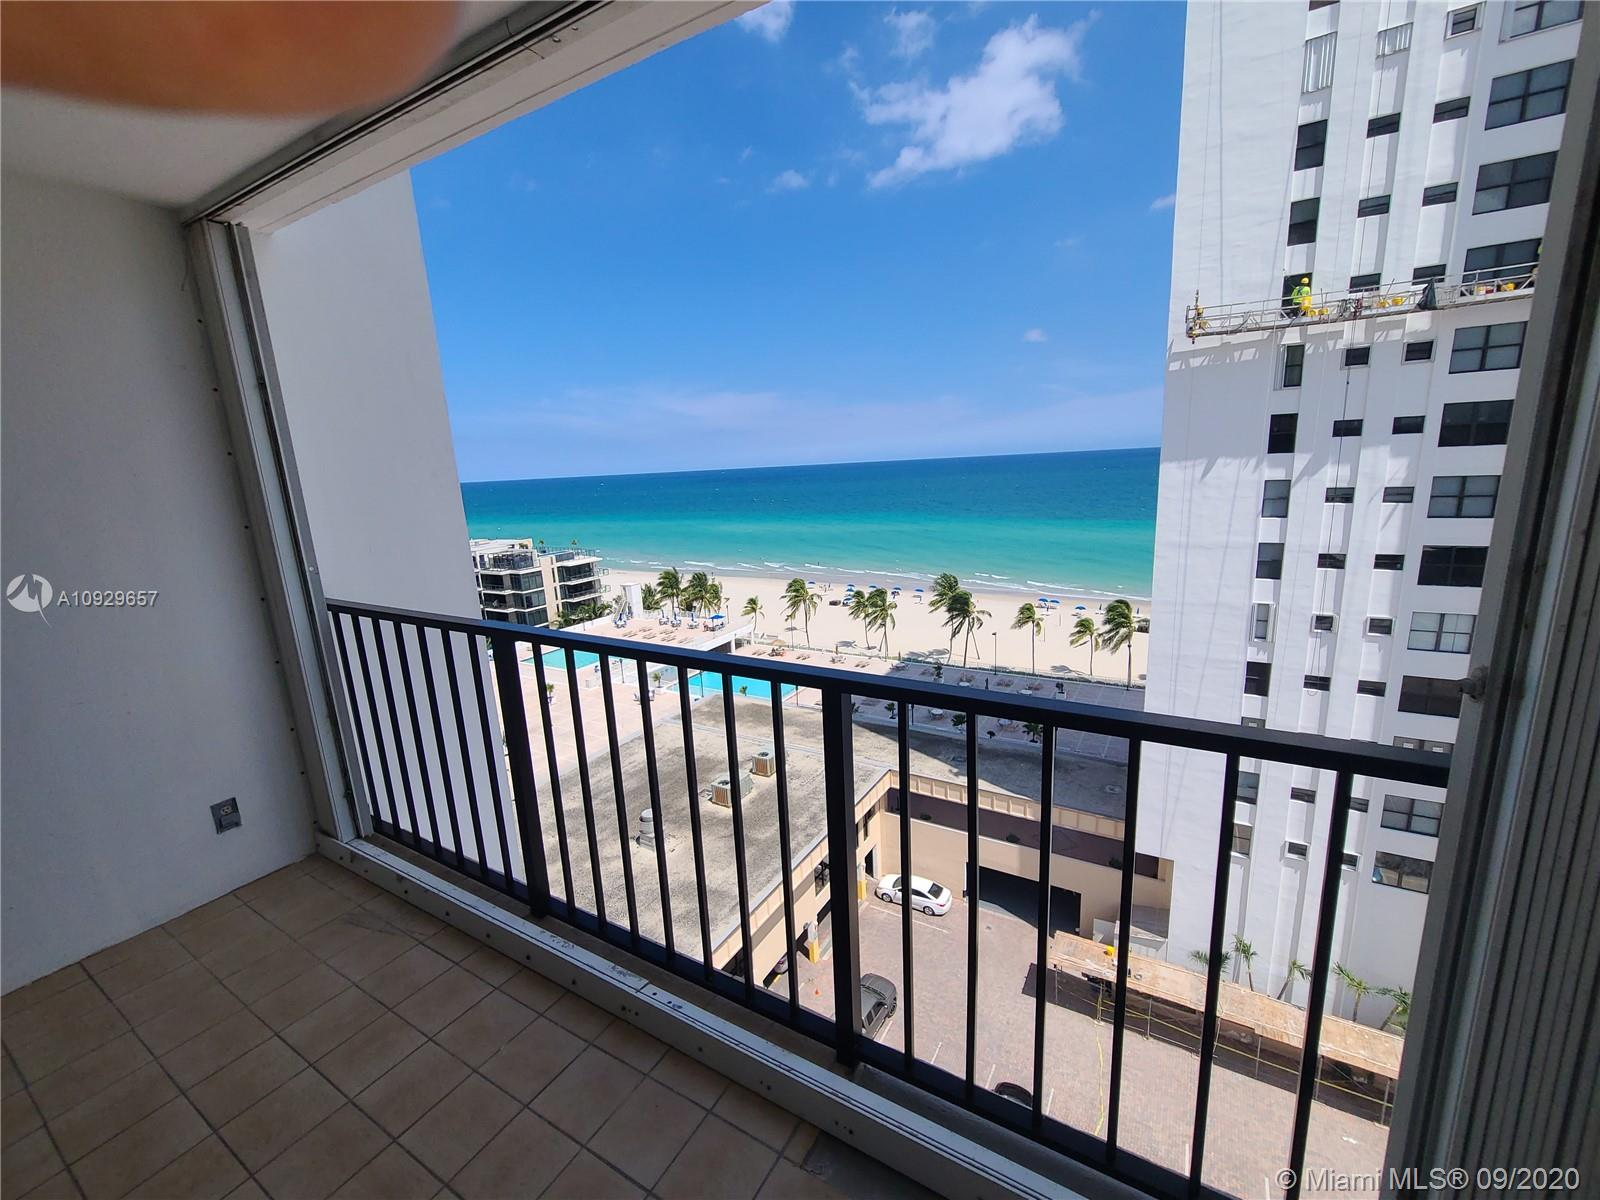 Catania, Tower 2 #1101 - 2401 S Ocean Dr #1101, Hollywood, FL 33019